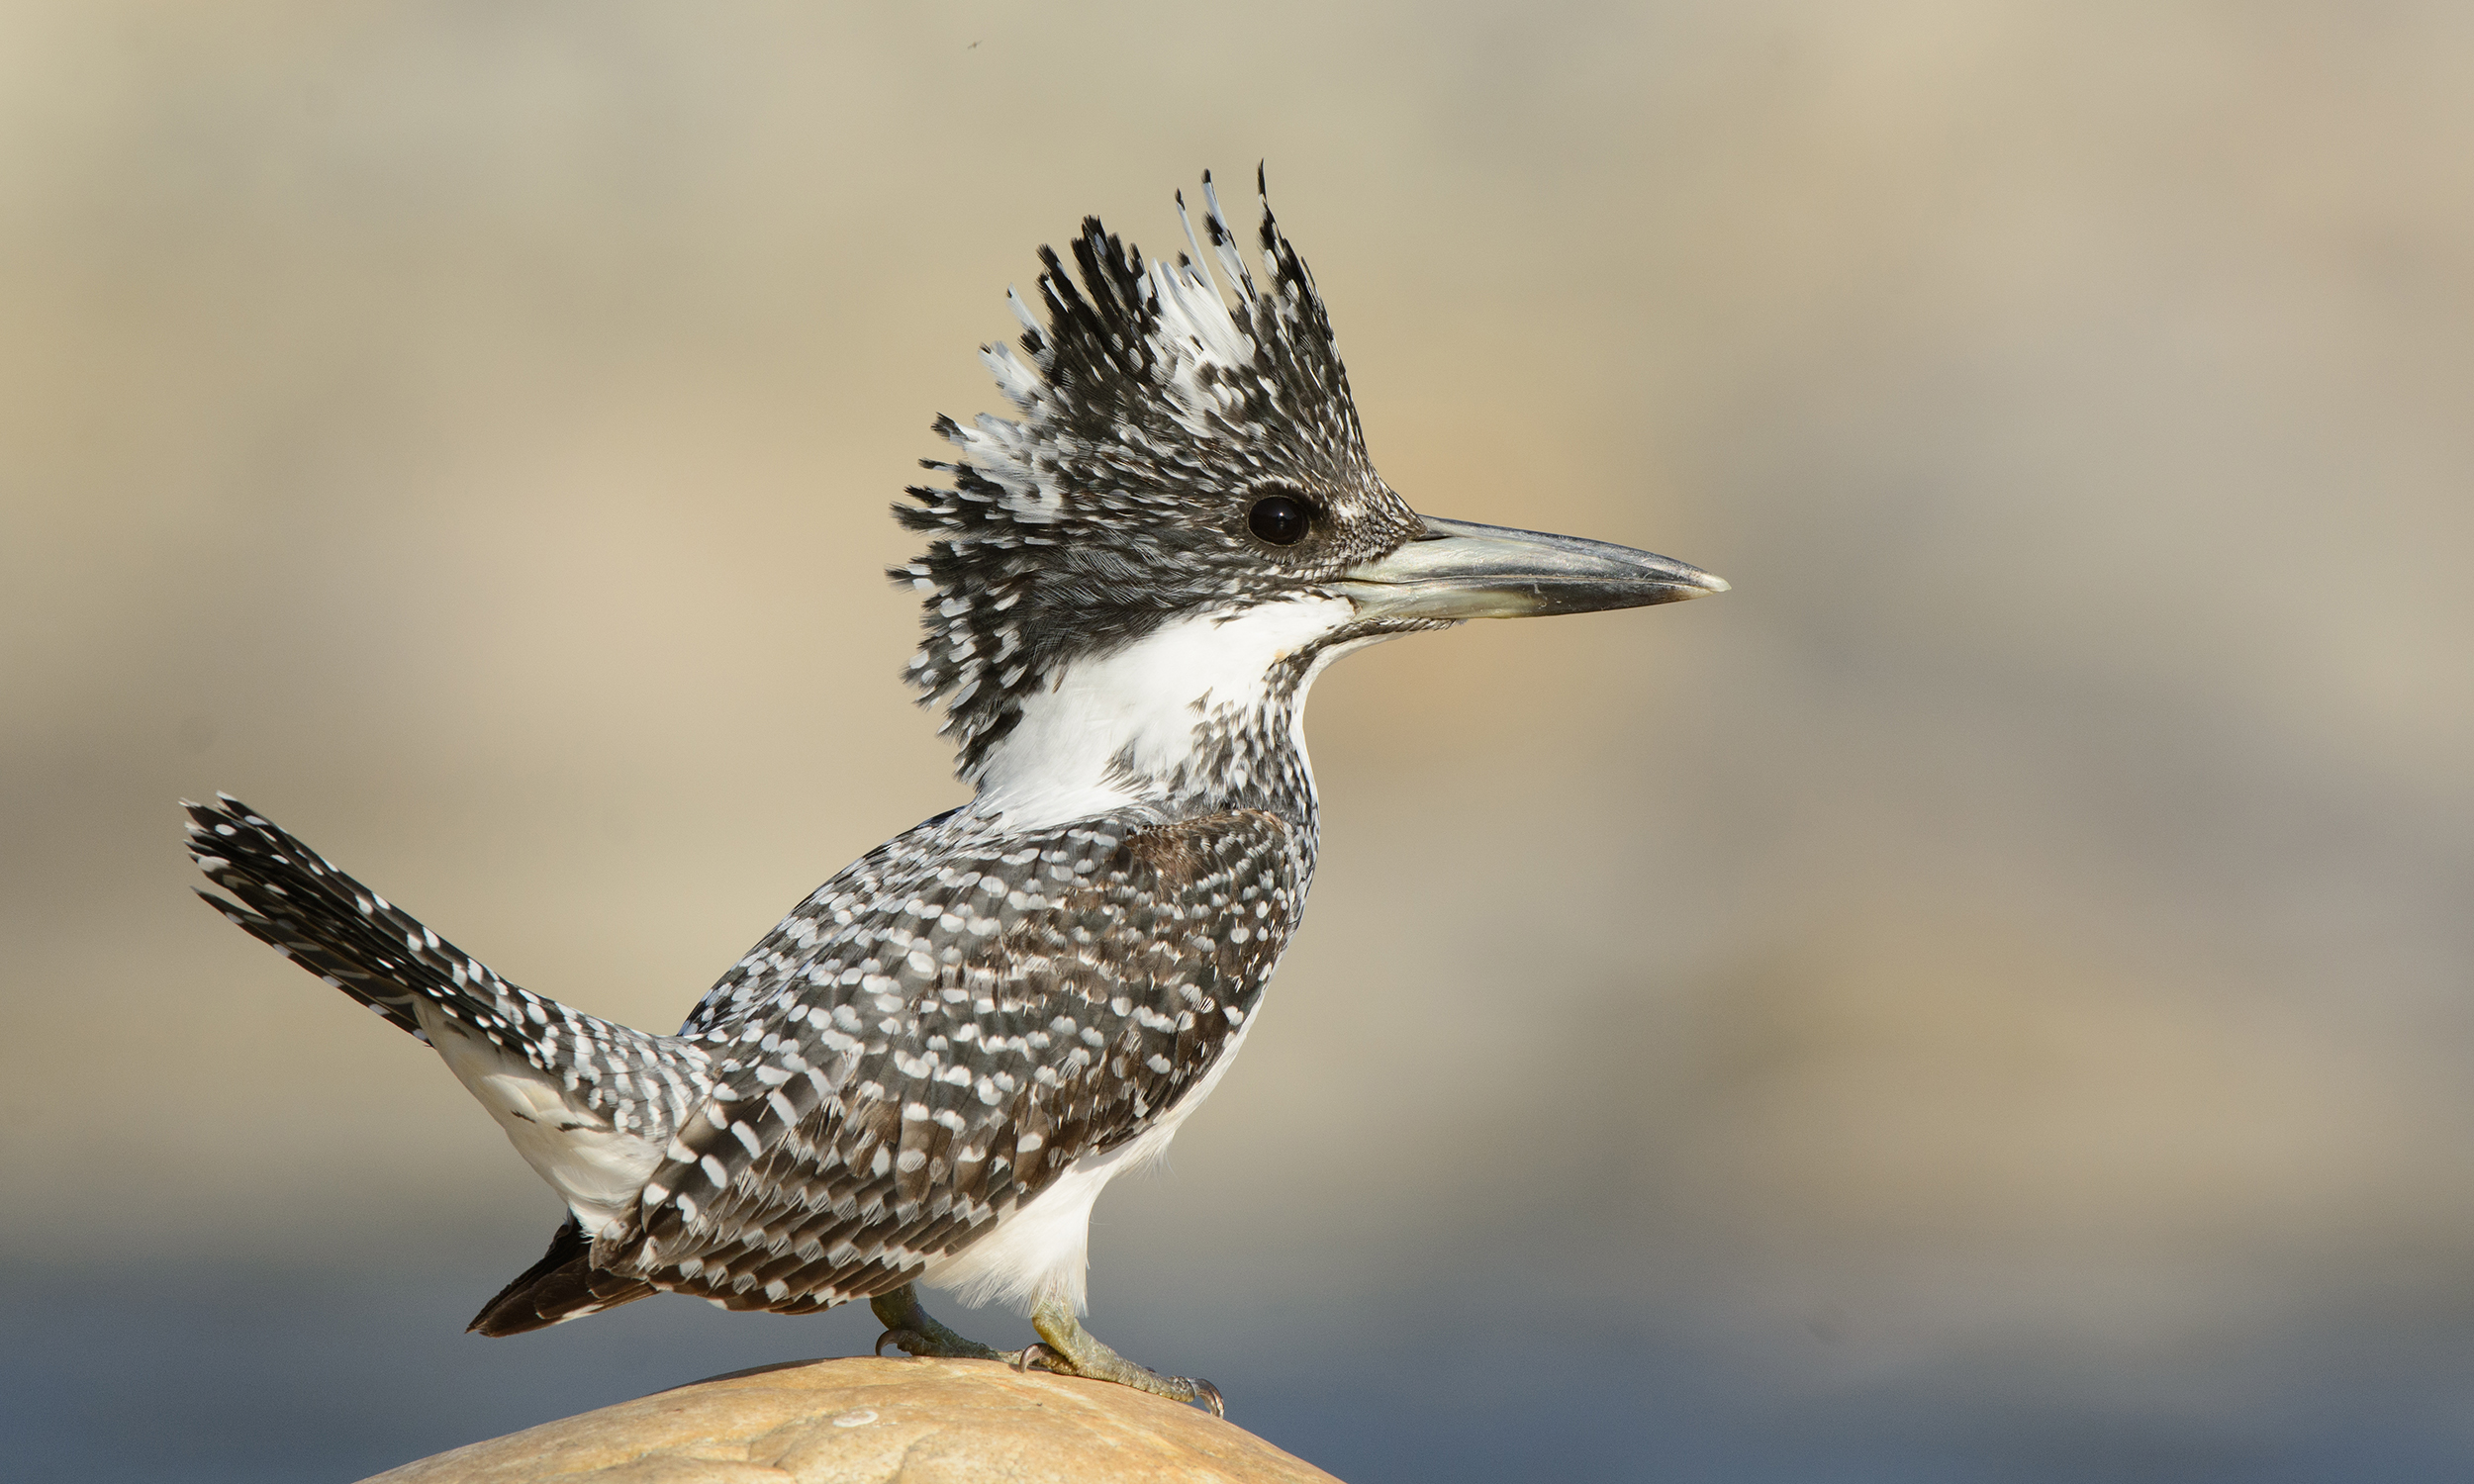 Crested Kingfisher - Profile | Facts | Call | Diet | Japan